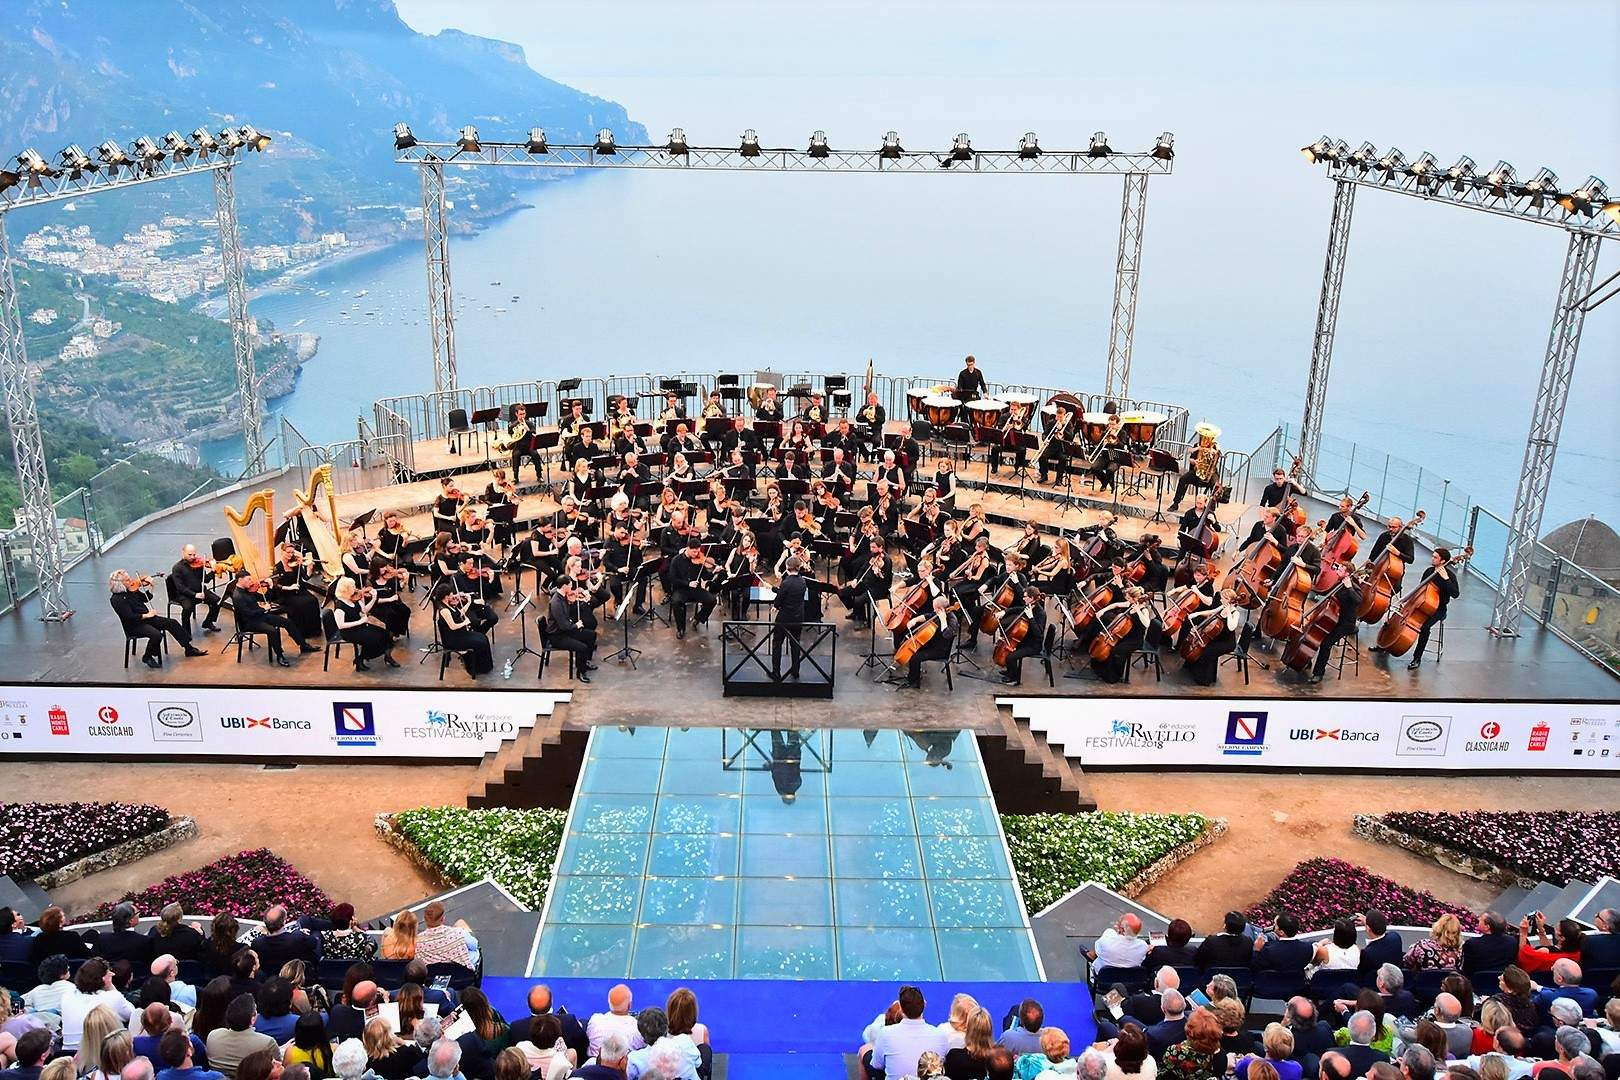 ravello-festival-amalfi-classical-music-italy-travel-event